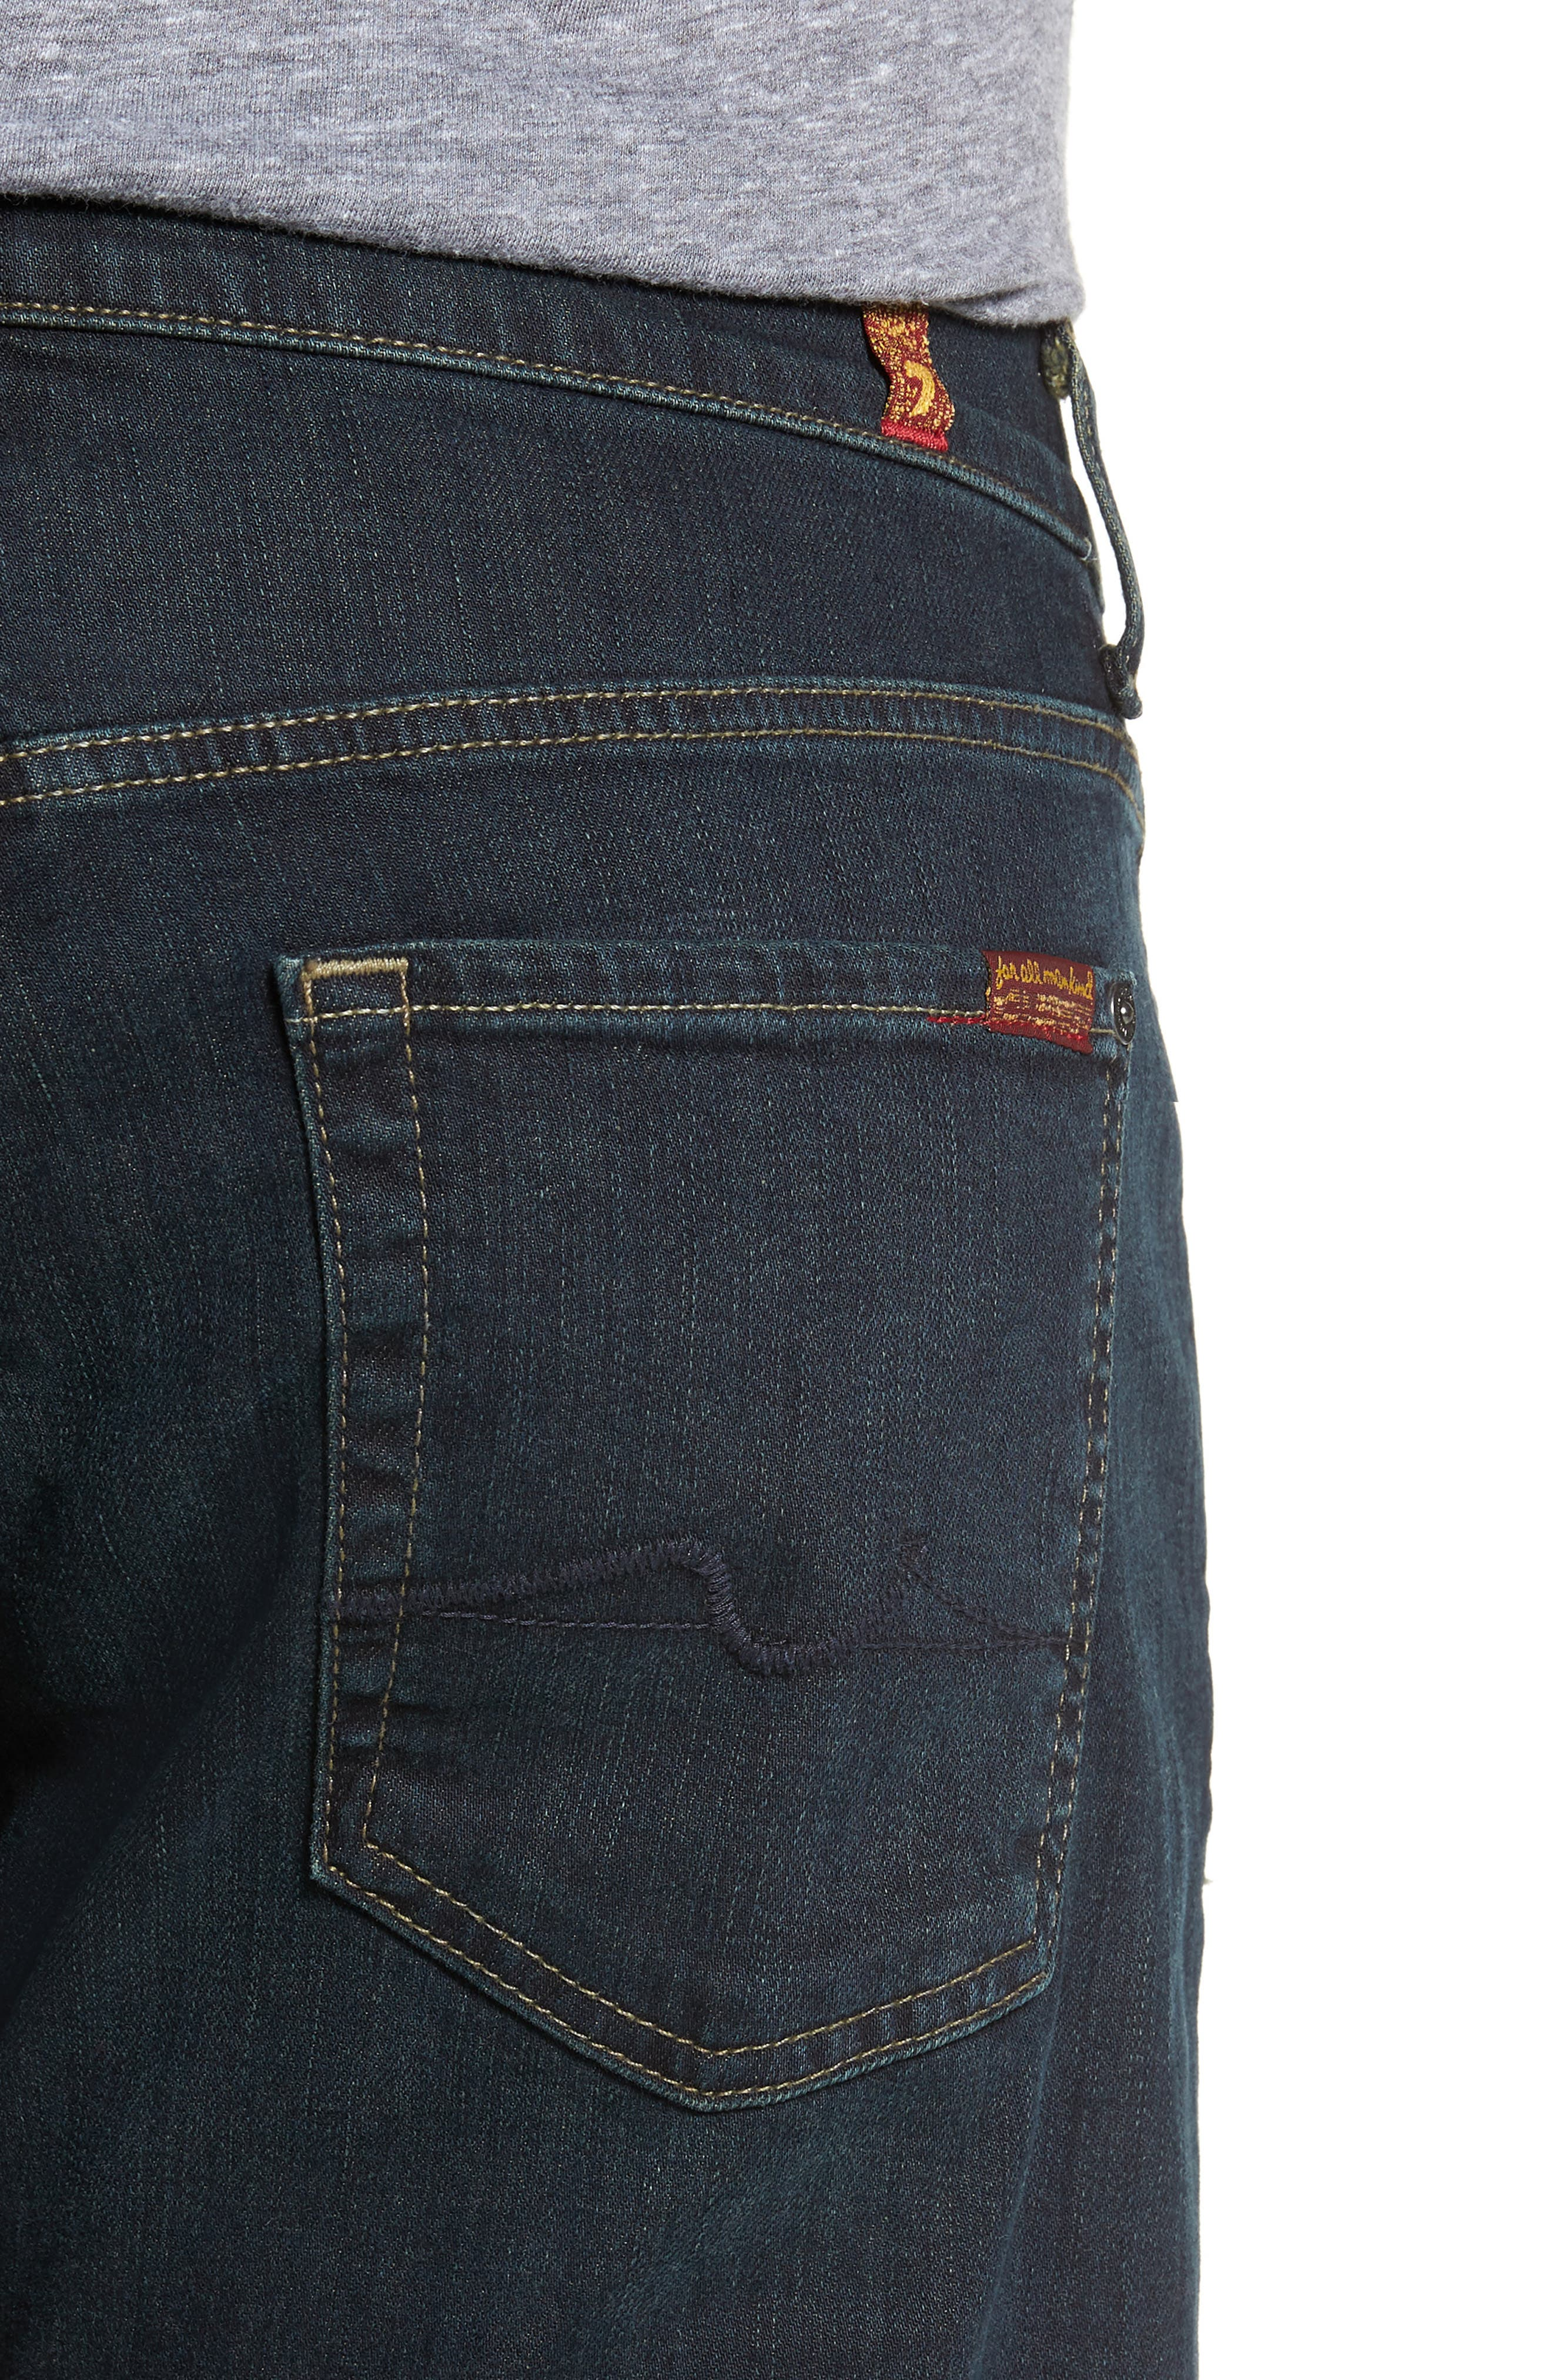 Austyn Relaxed Fit Jeans,                             Alternate thumbnail 4, color,                             CONTRA